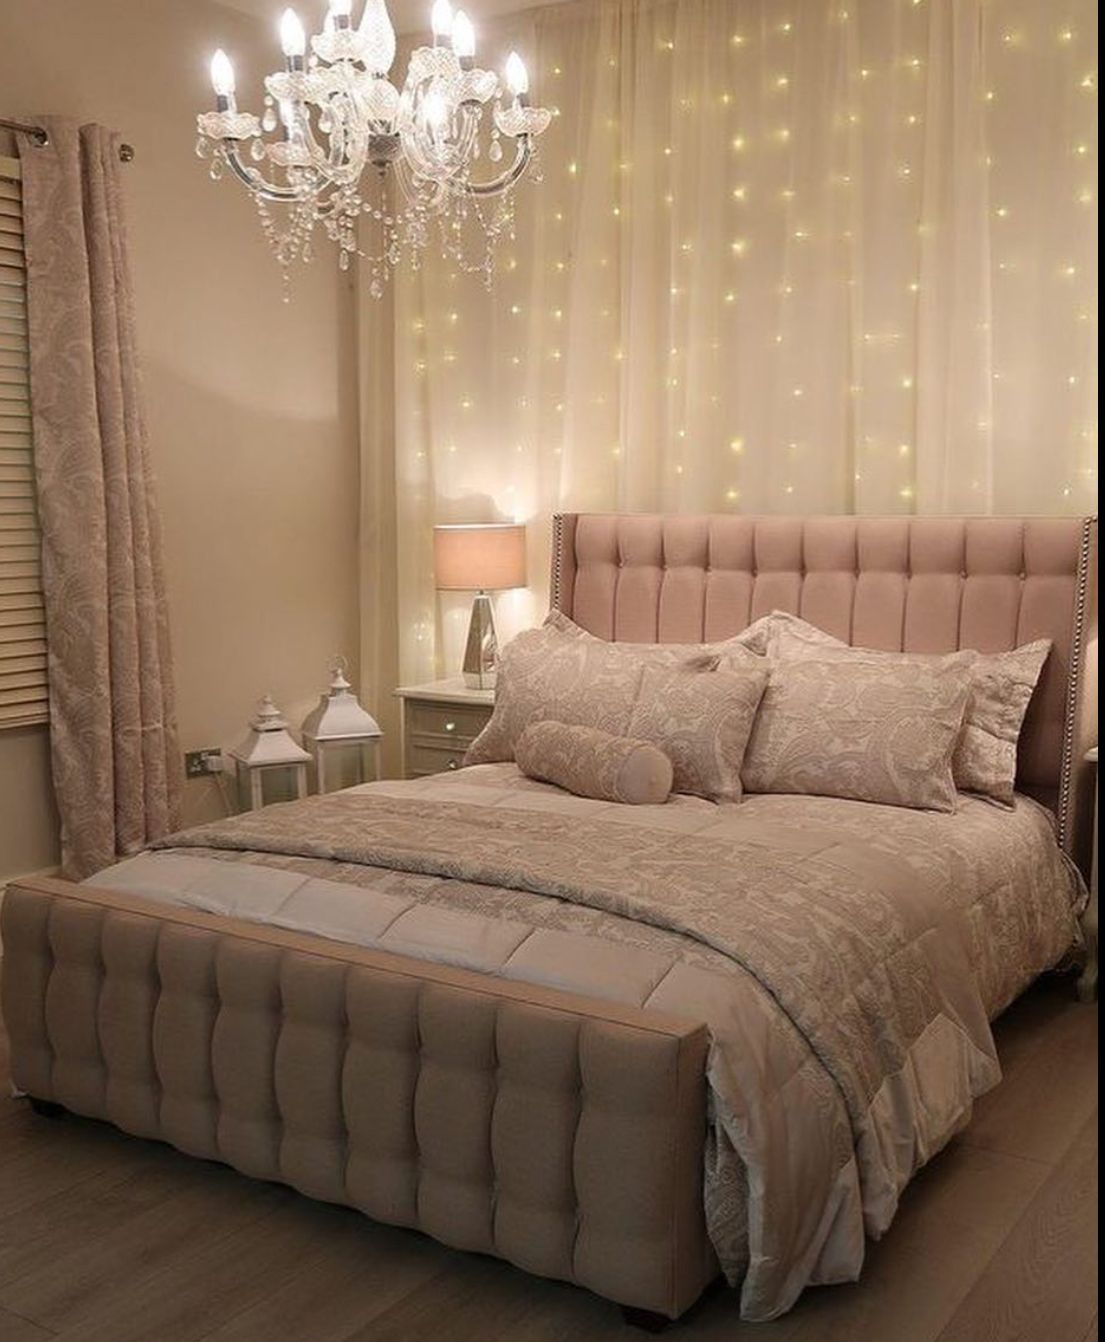 be ideas girl bedroom designs girl room on cute bedroom decor ideas for teen romantic bedroom decorating with light and color id=41035